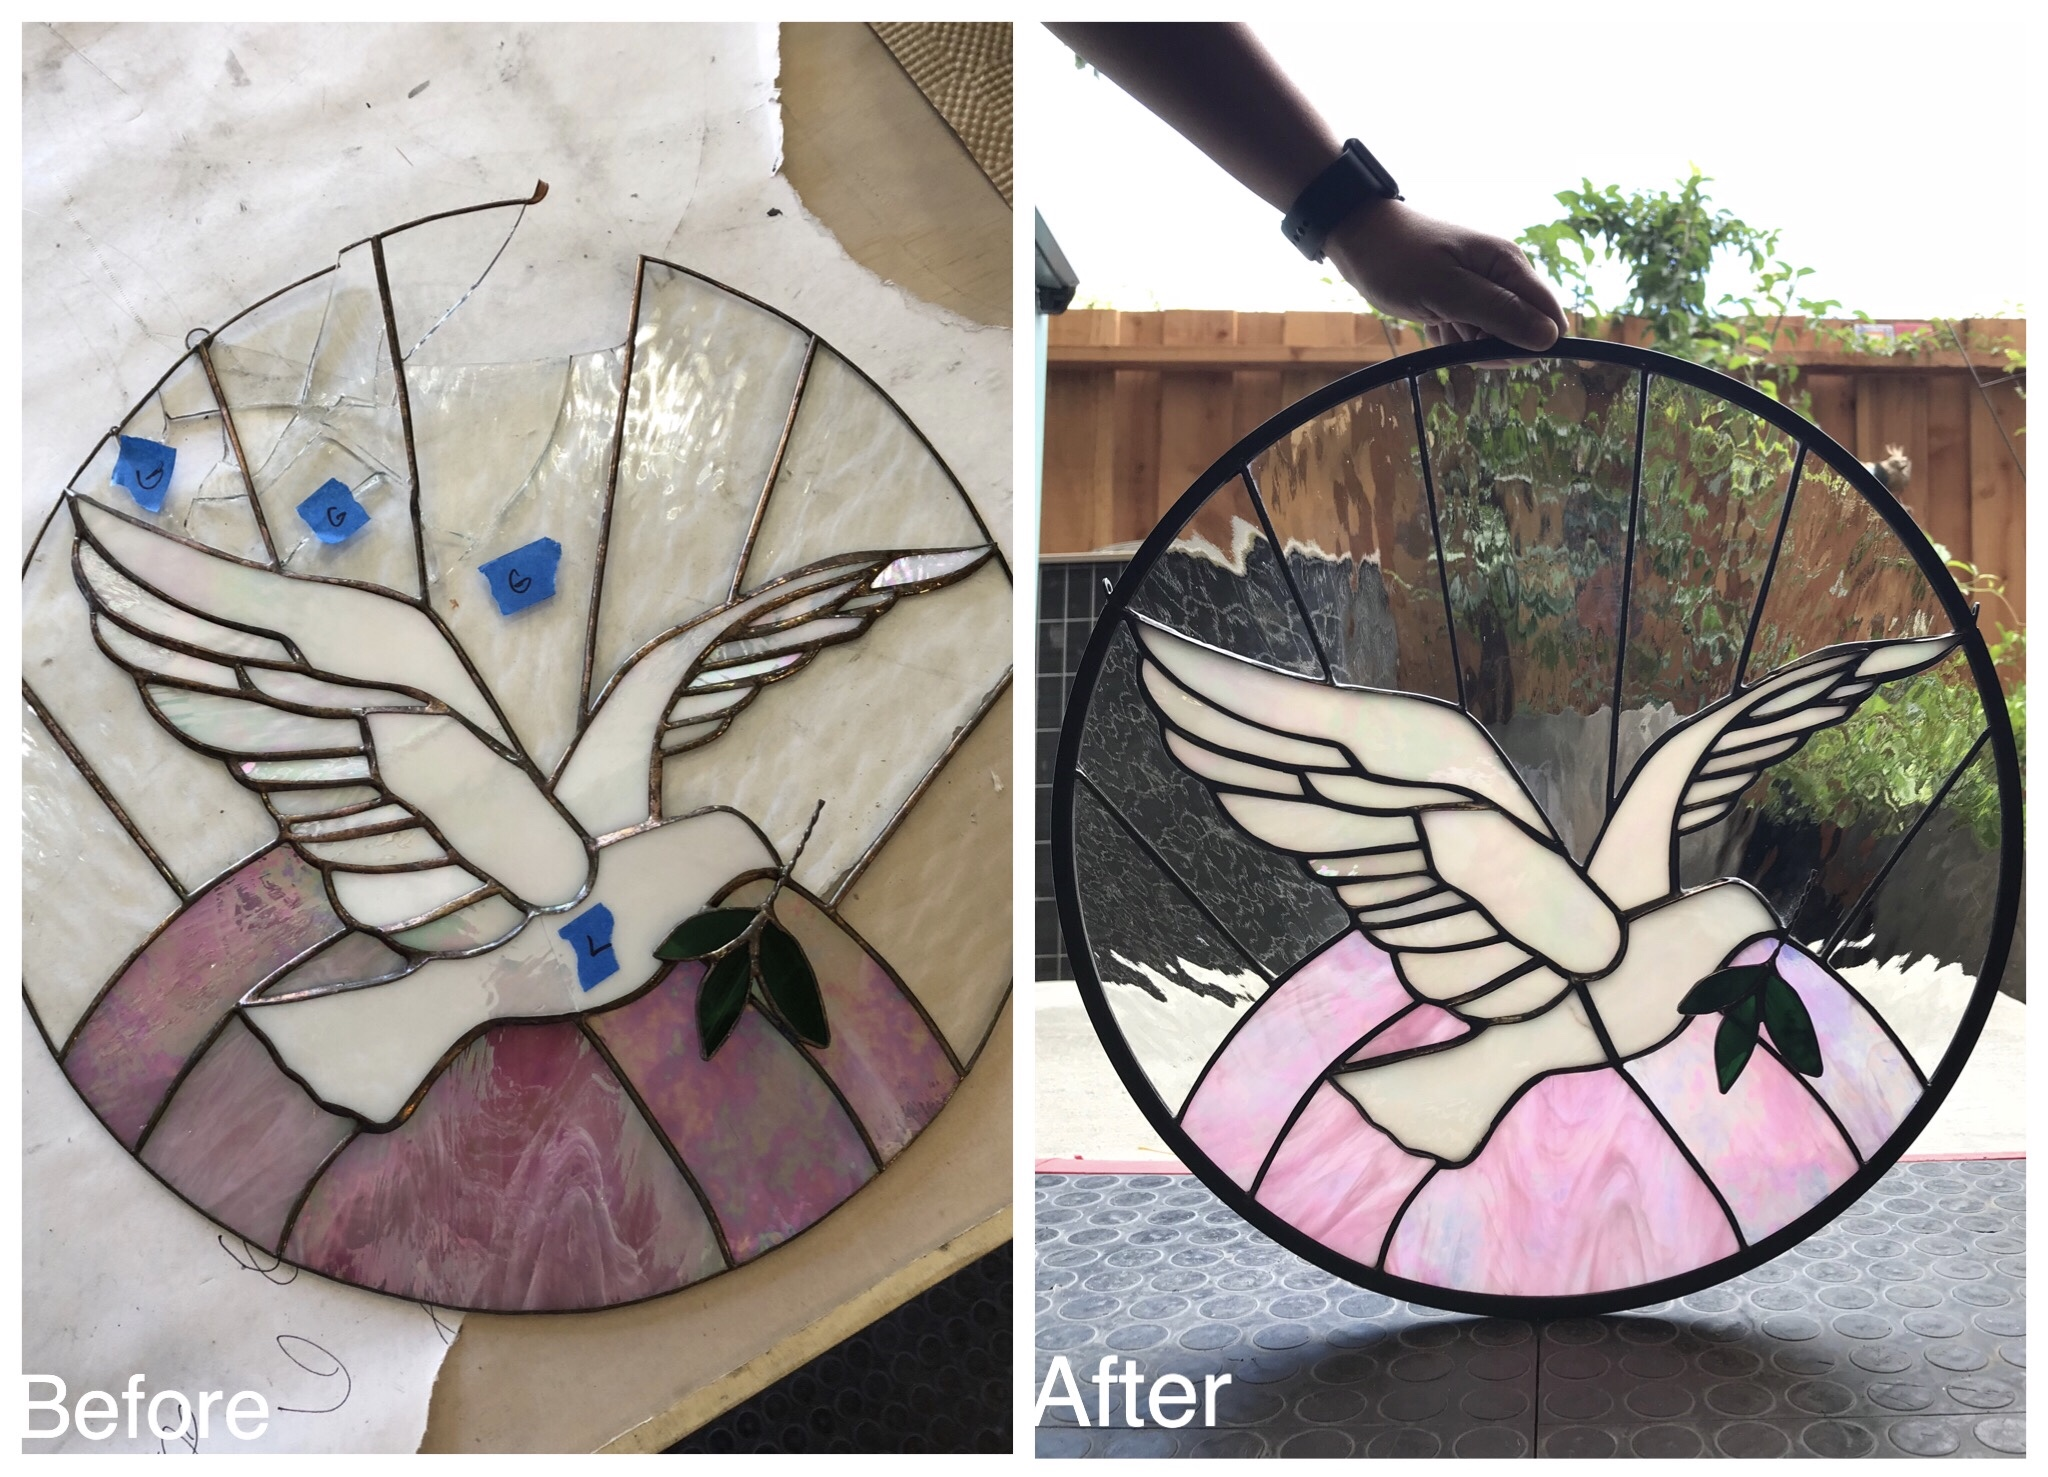 stained glass copper foil repair before and after circle raised 3d dove design legacy glass studios california.jpg